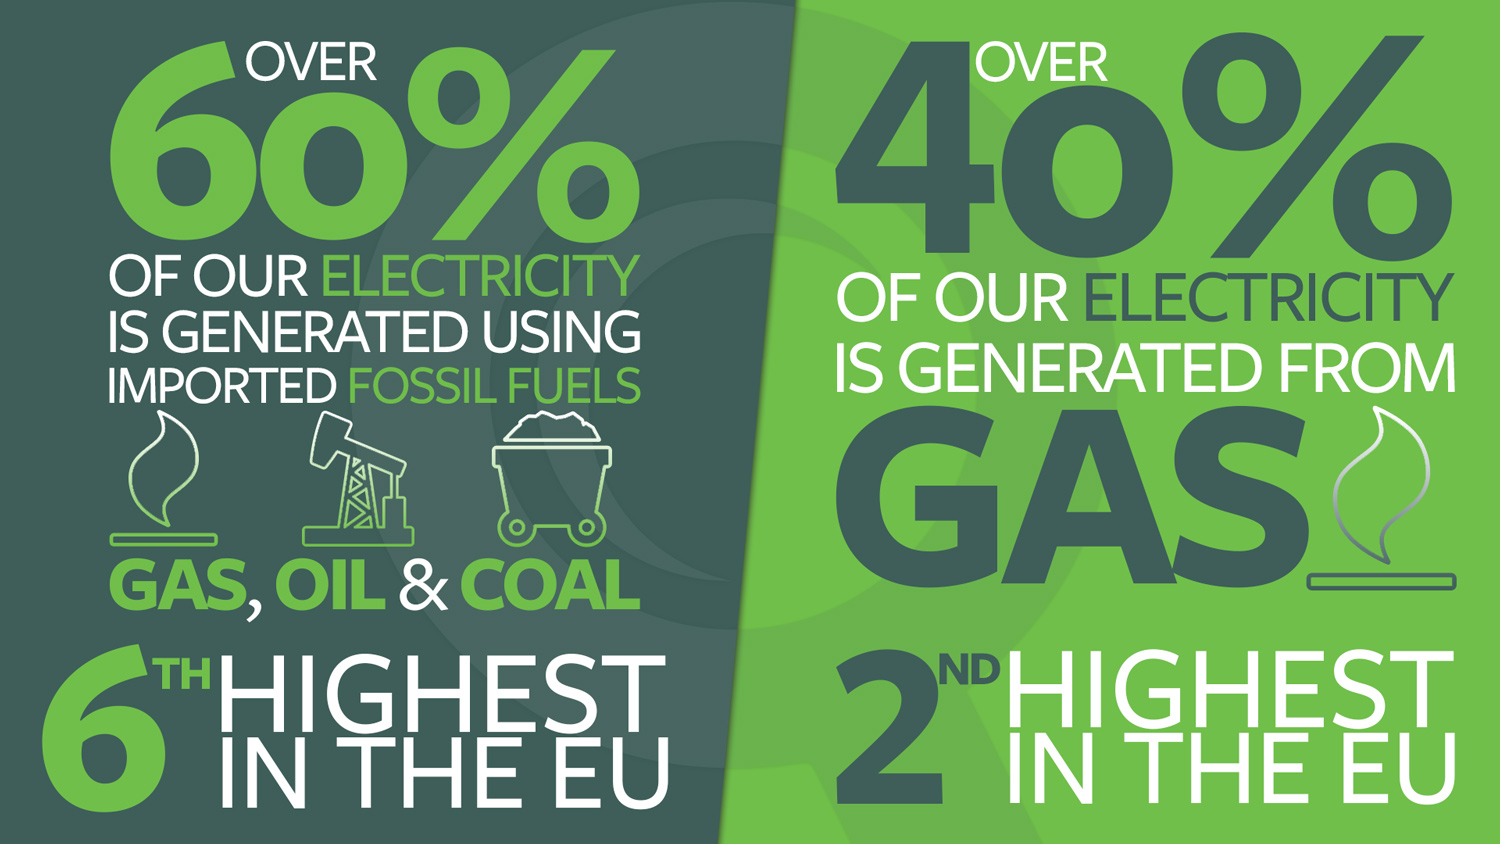 Ireland's dependency on fossil fuels